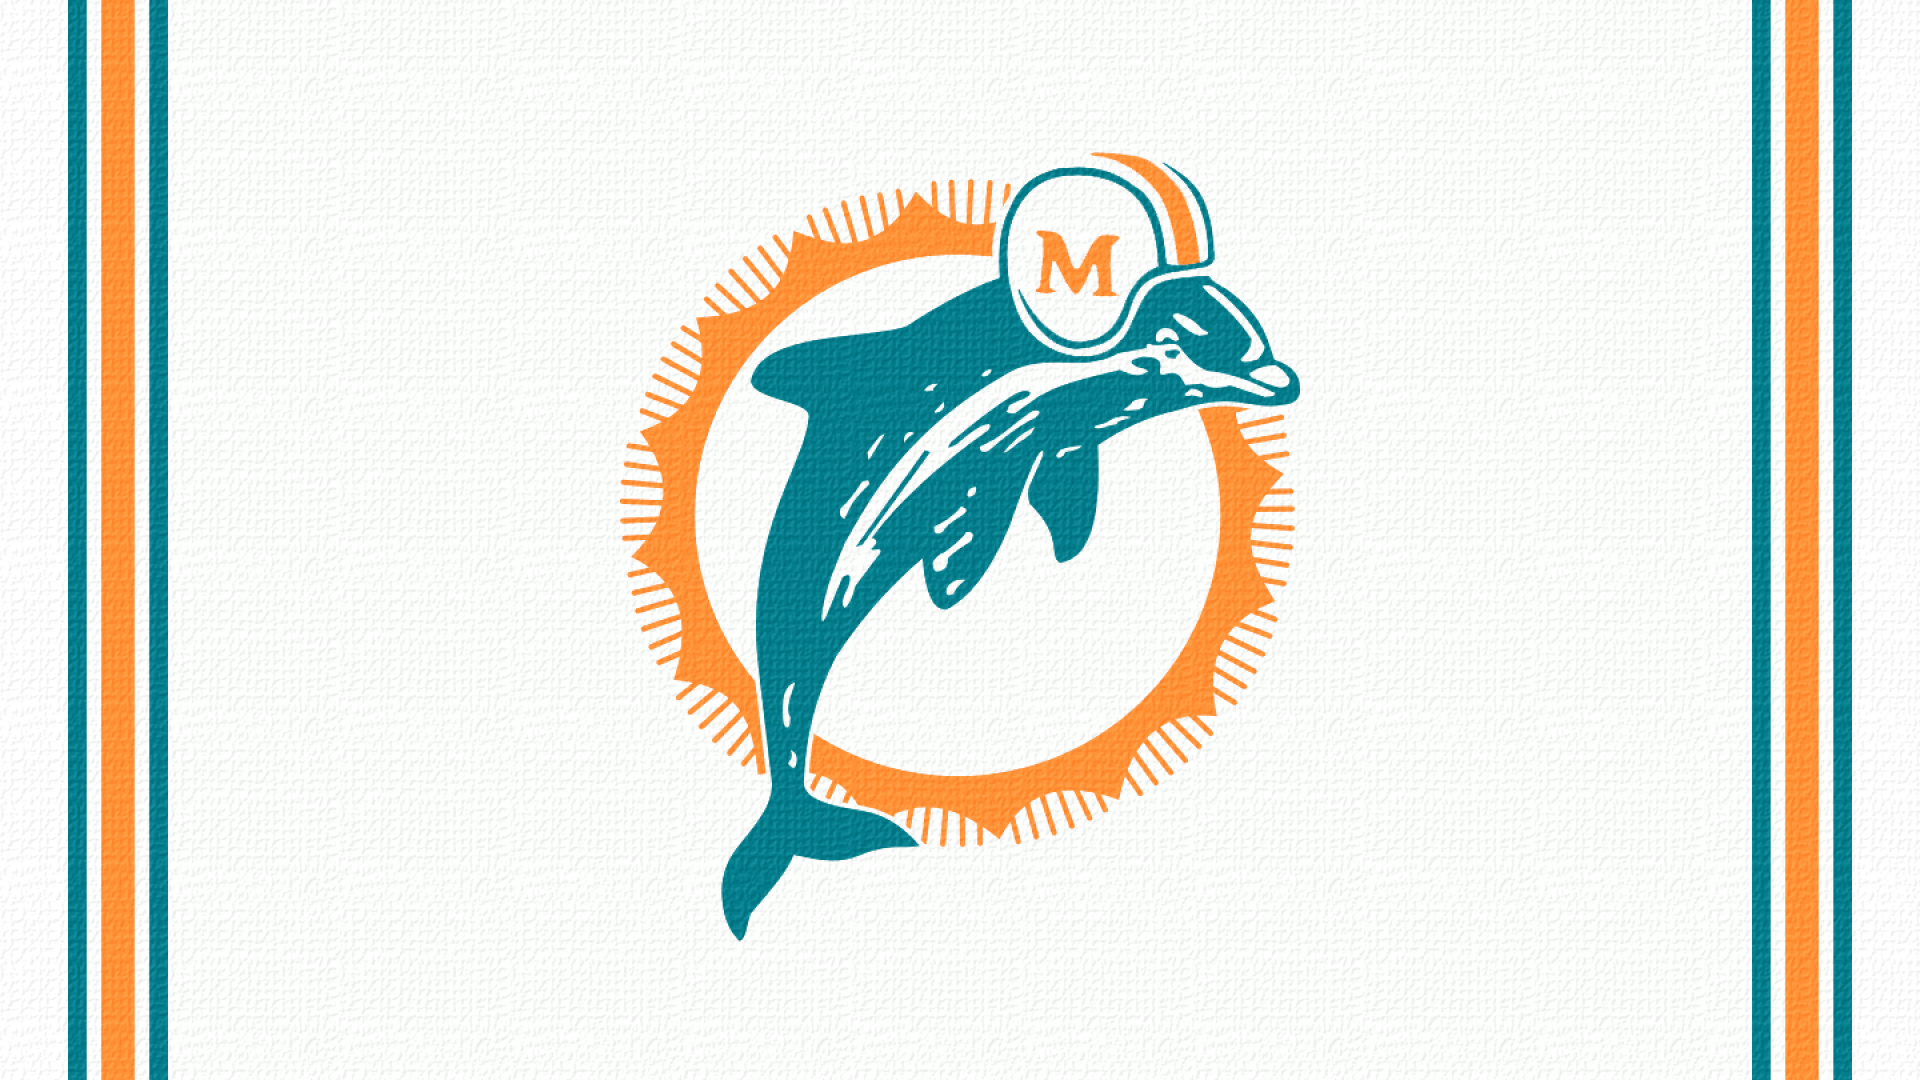 Miami dolphins retro wallpaper 52923 1920x1080 px hdwallsource miami dolphins retro wallpaper 52923 voltagebd